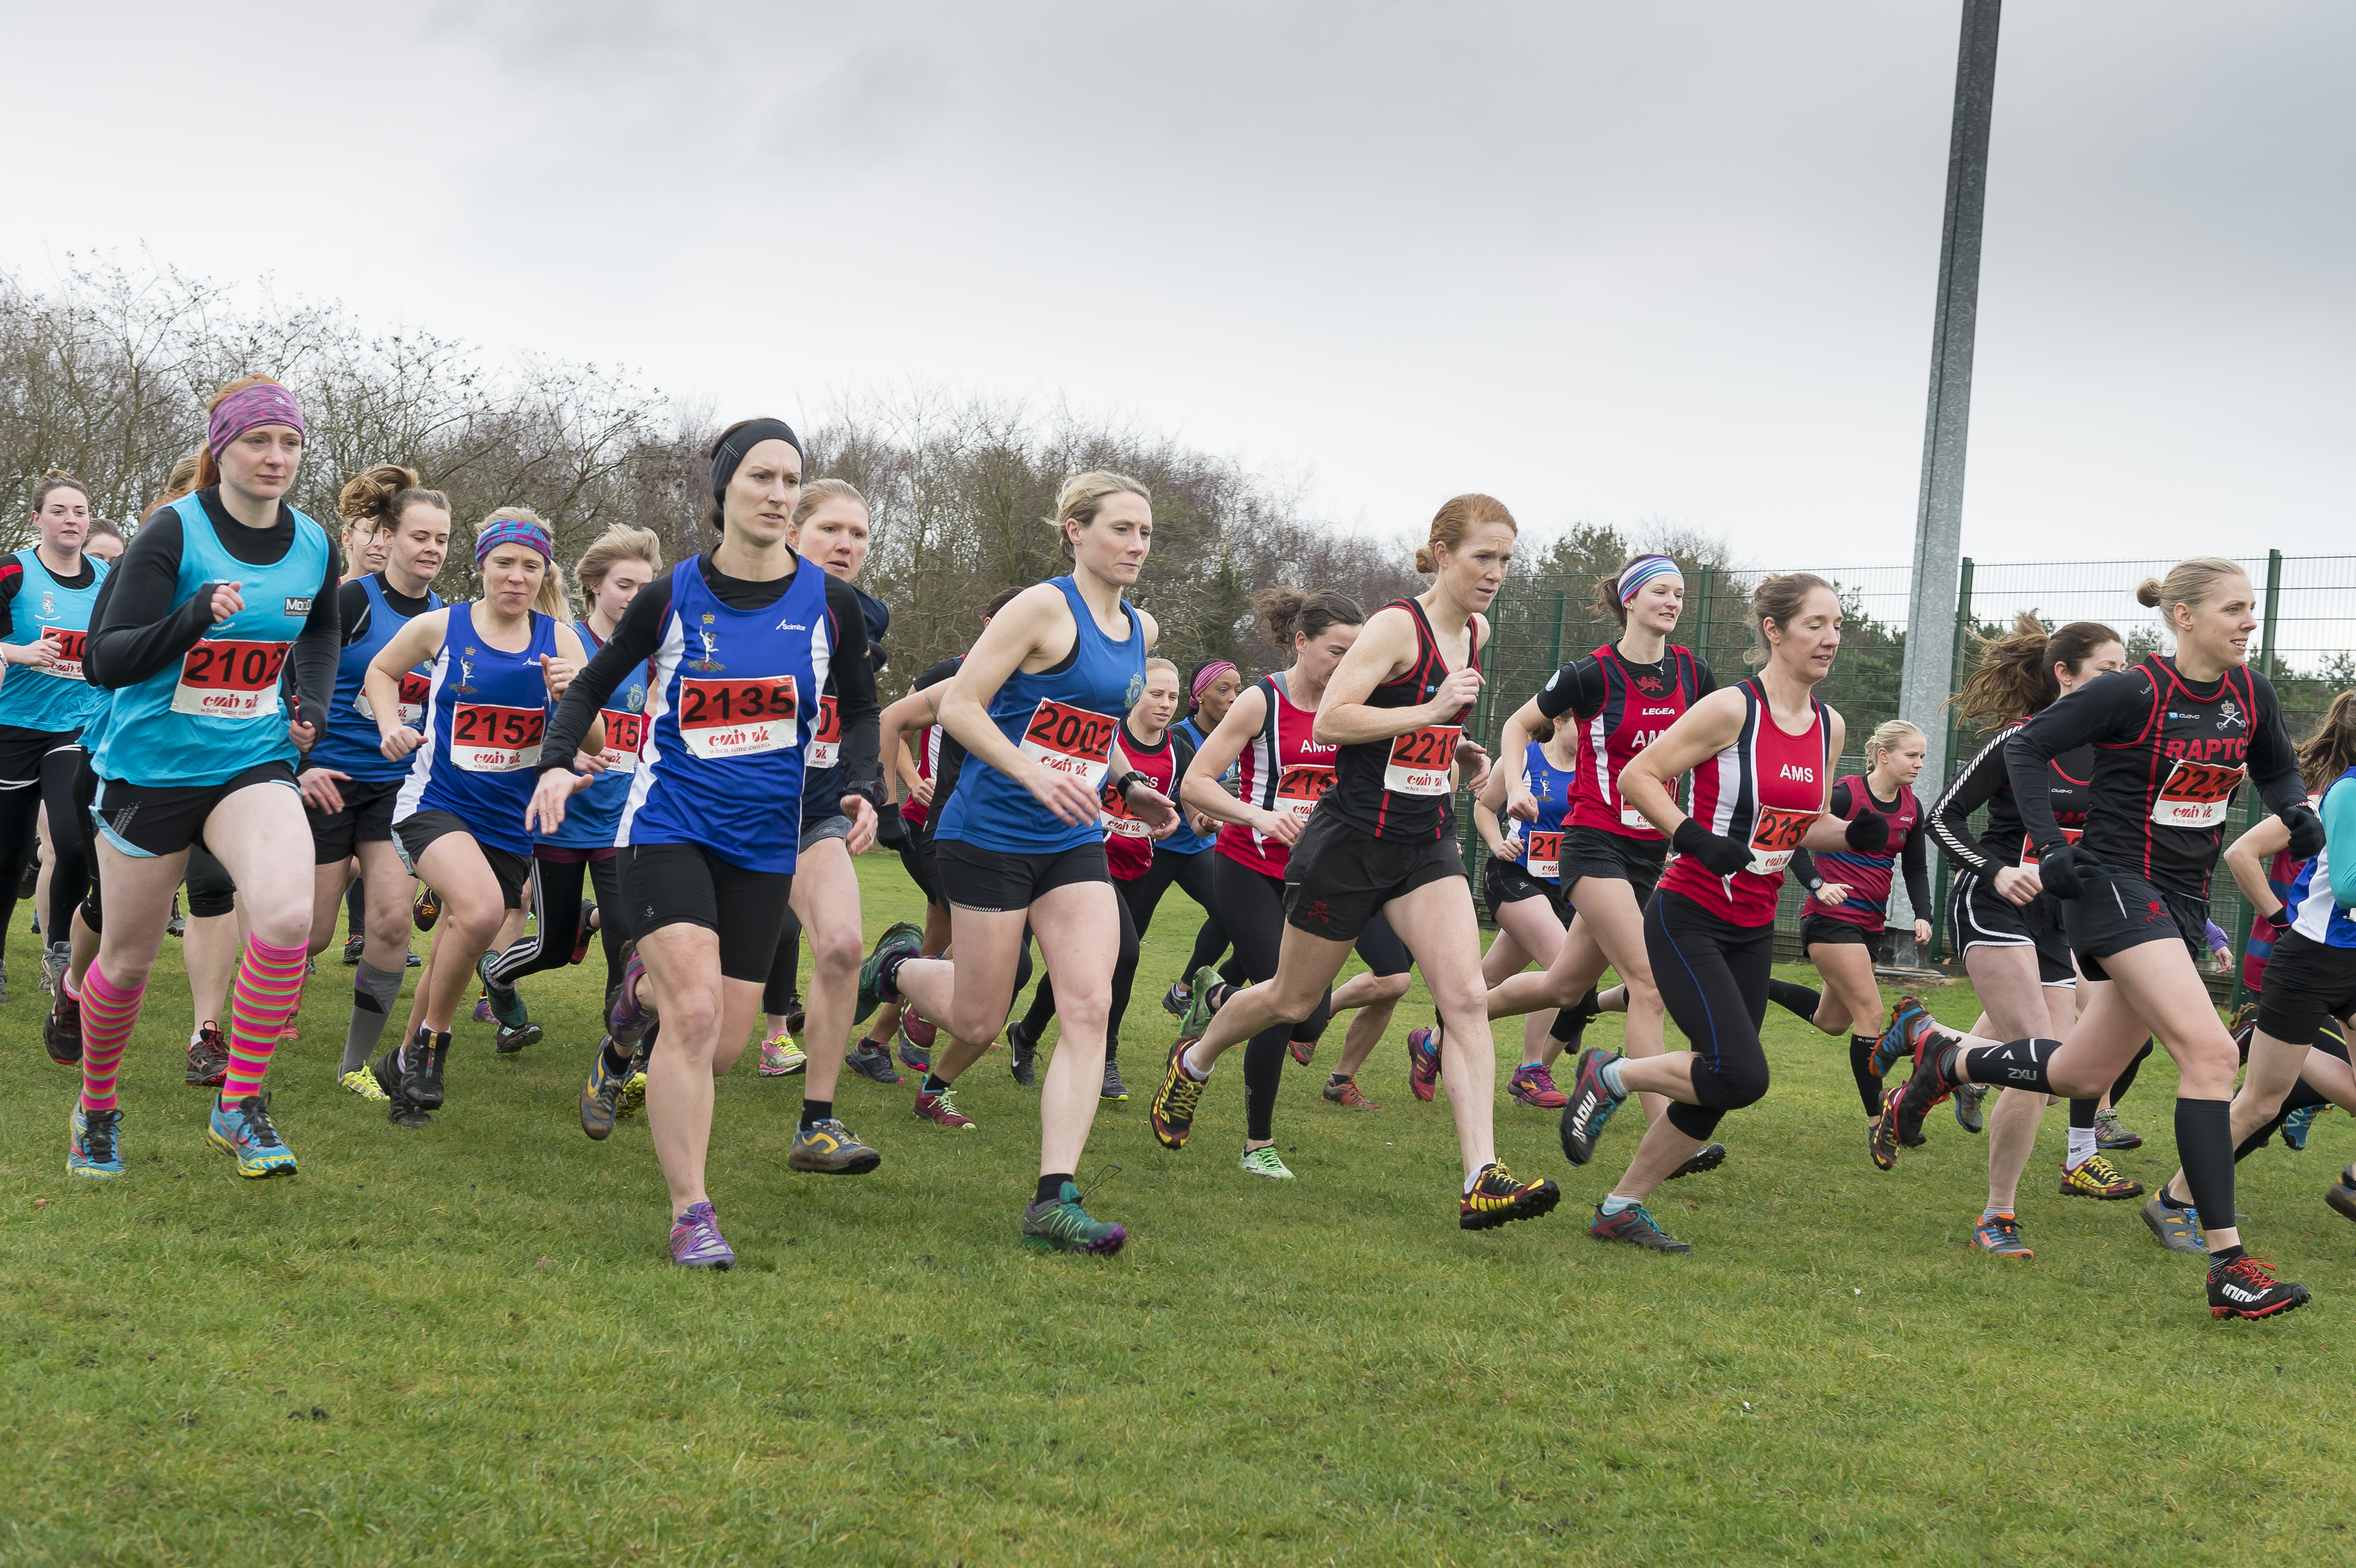 Army Inter-Corps Cross Country Championships Weds 27 Feb 2019